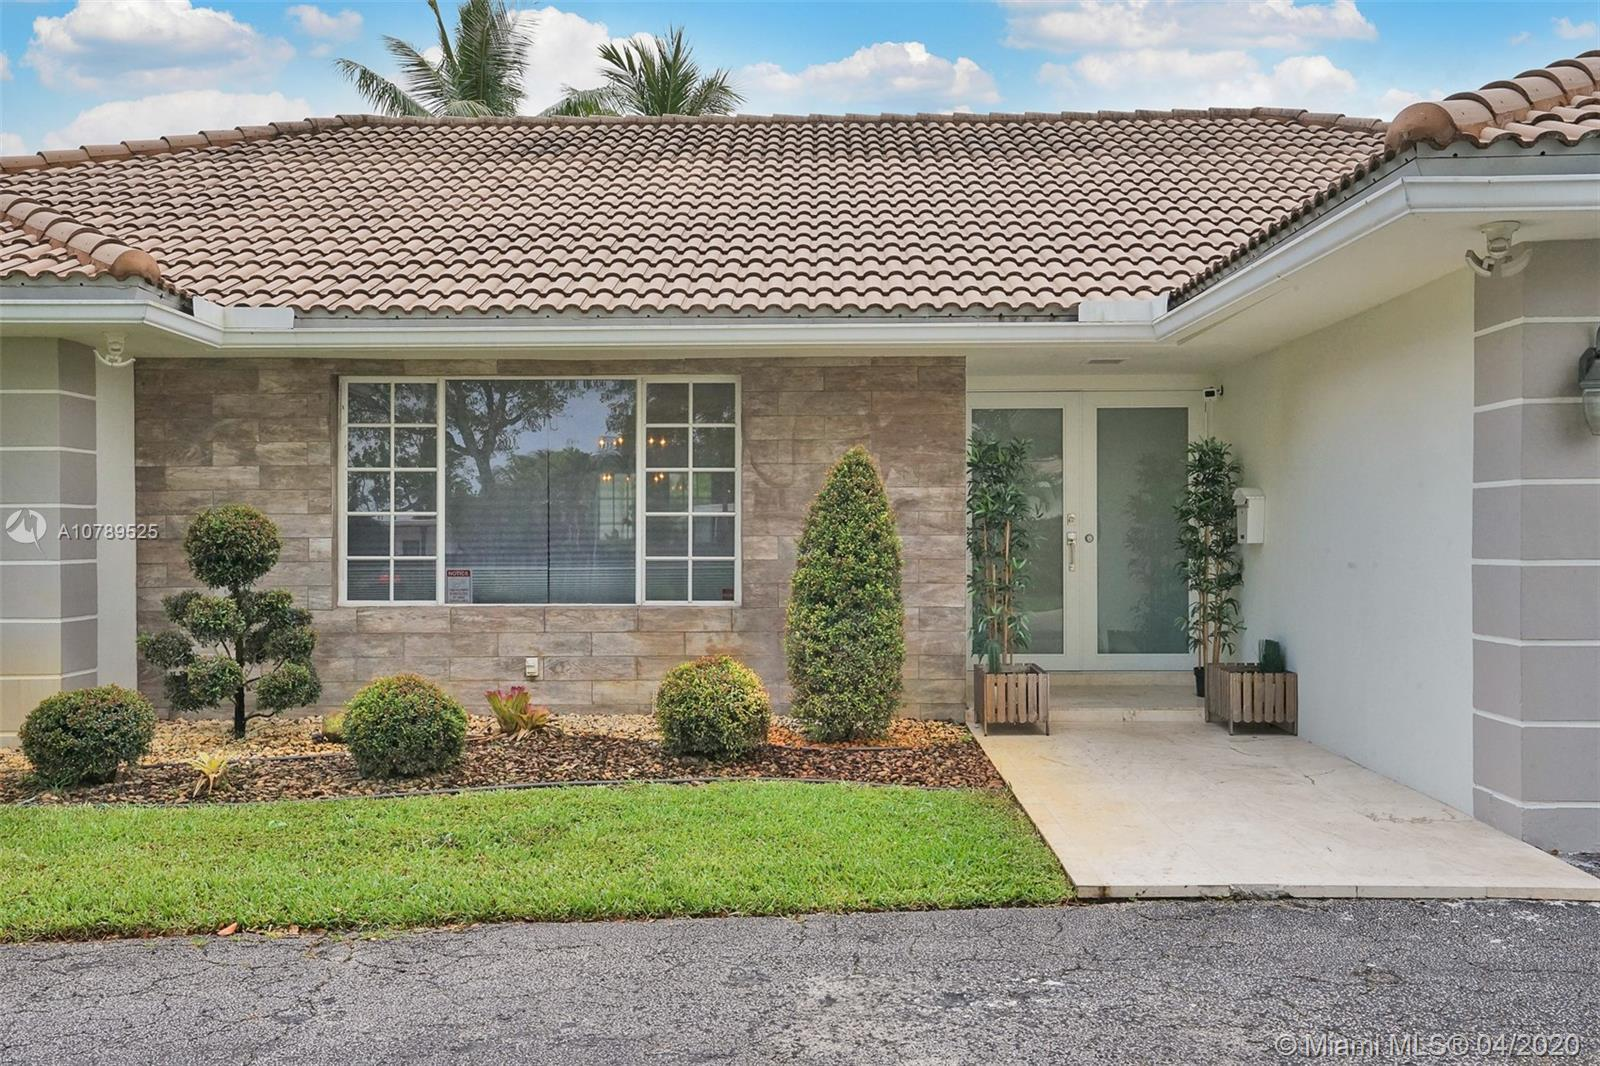 Beautifully remodeled 6 bedroom 3 bathroom home in the highly coveted community of Emerald Hills. Ho